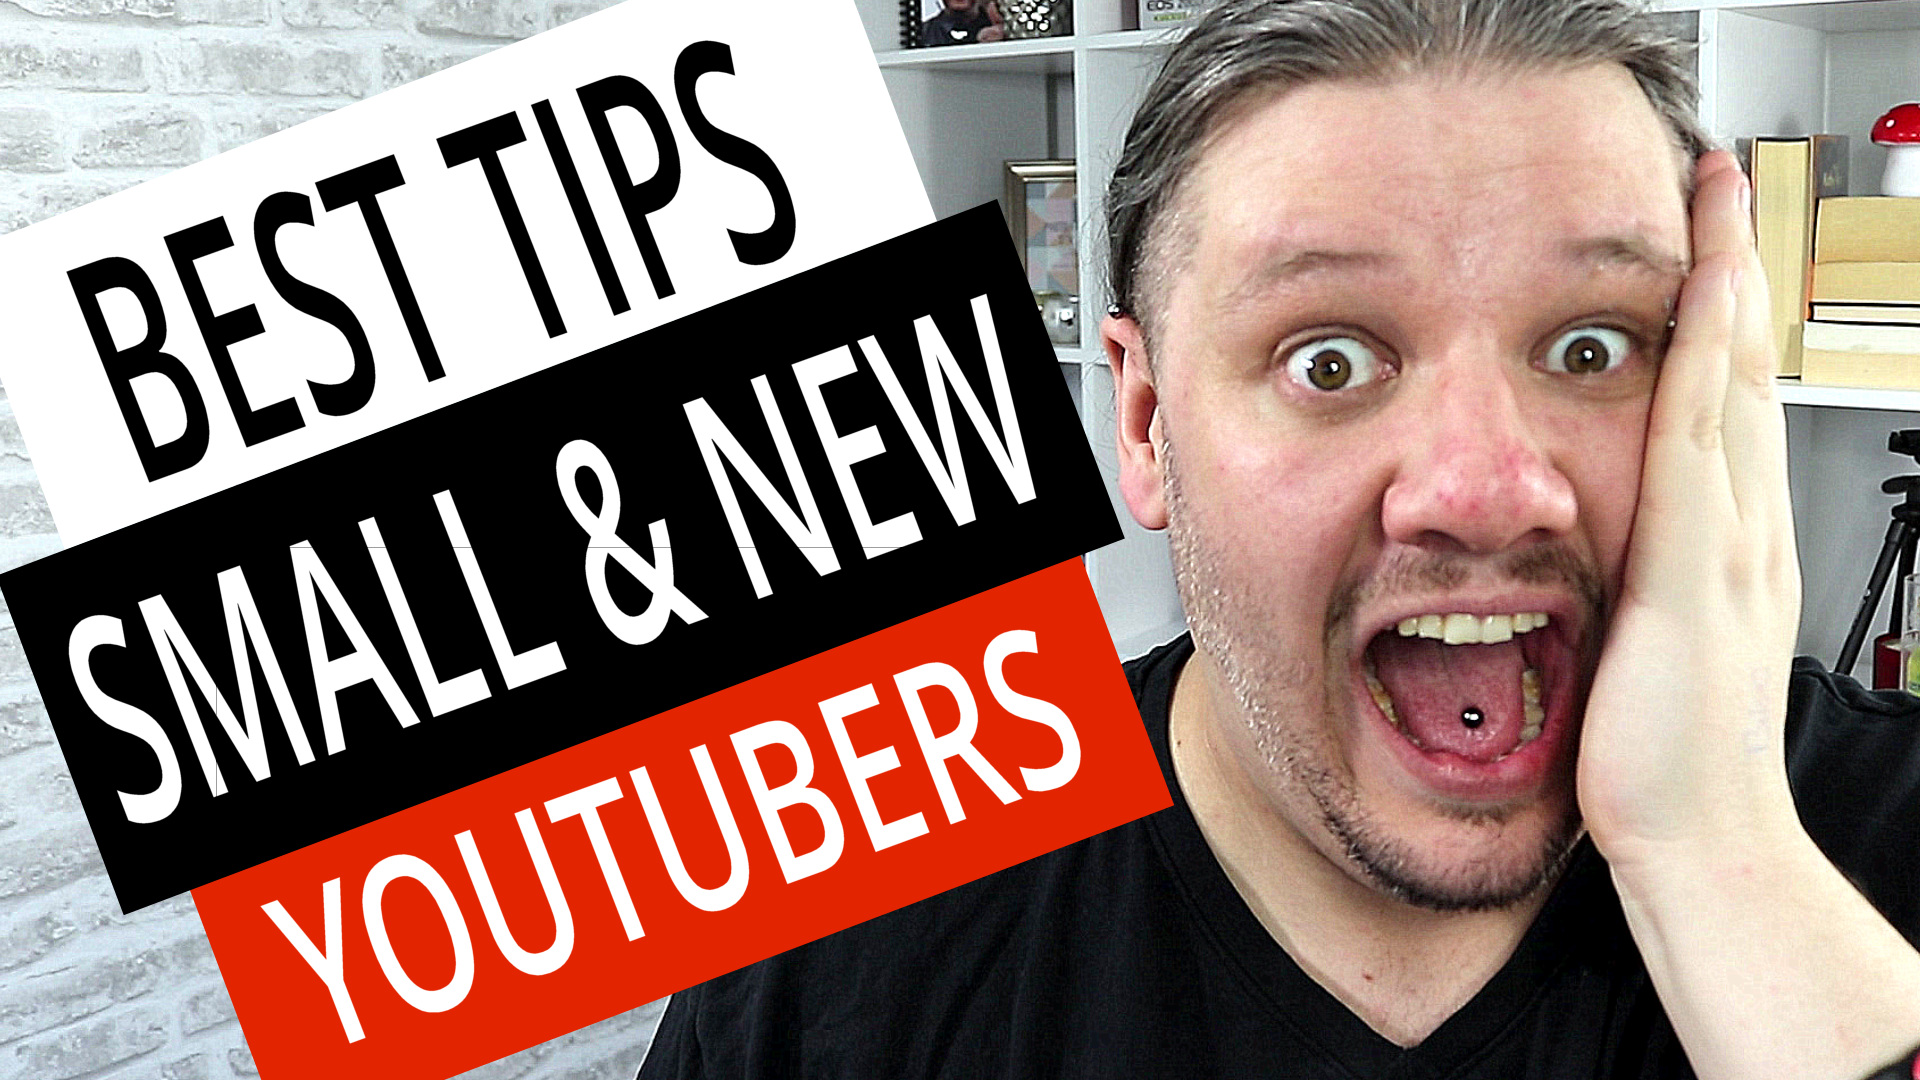 9 BEST Tips For Small YouTubers, alan spicer,alanspicer,best tips for small youtubers,best tips for youtubers,youtube basics for beginners,youtube for beginners,youtube basics,new youtubers,new youtuber tips,youtuber best tips,youtube best tips,best tips for youtube channel,best tips for making youtube videos,best youtube tips and tricks,best youtube tips for beginners,best tips to grow youtube channel,small youtuber tips,tips for new youtubers,best tips for new youtubers,new youtuber,tips